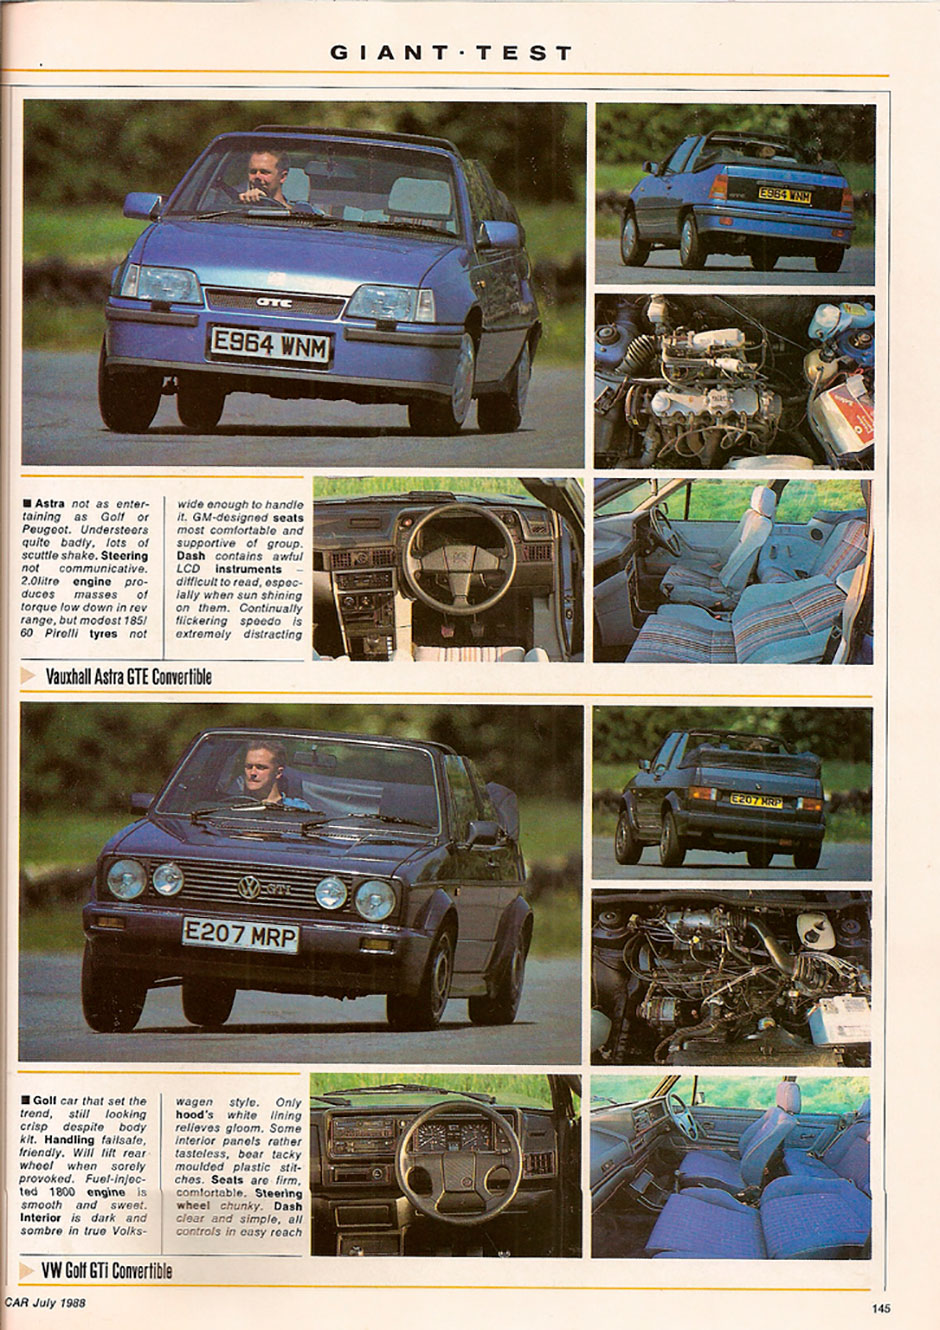 Ford Escort XR3i Cabriolet, Peugeot 205 CTi, Vauxhall Astra GTE Convertible, VW Golf GTi Cabrio